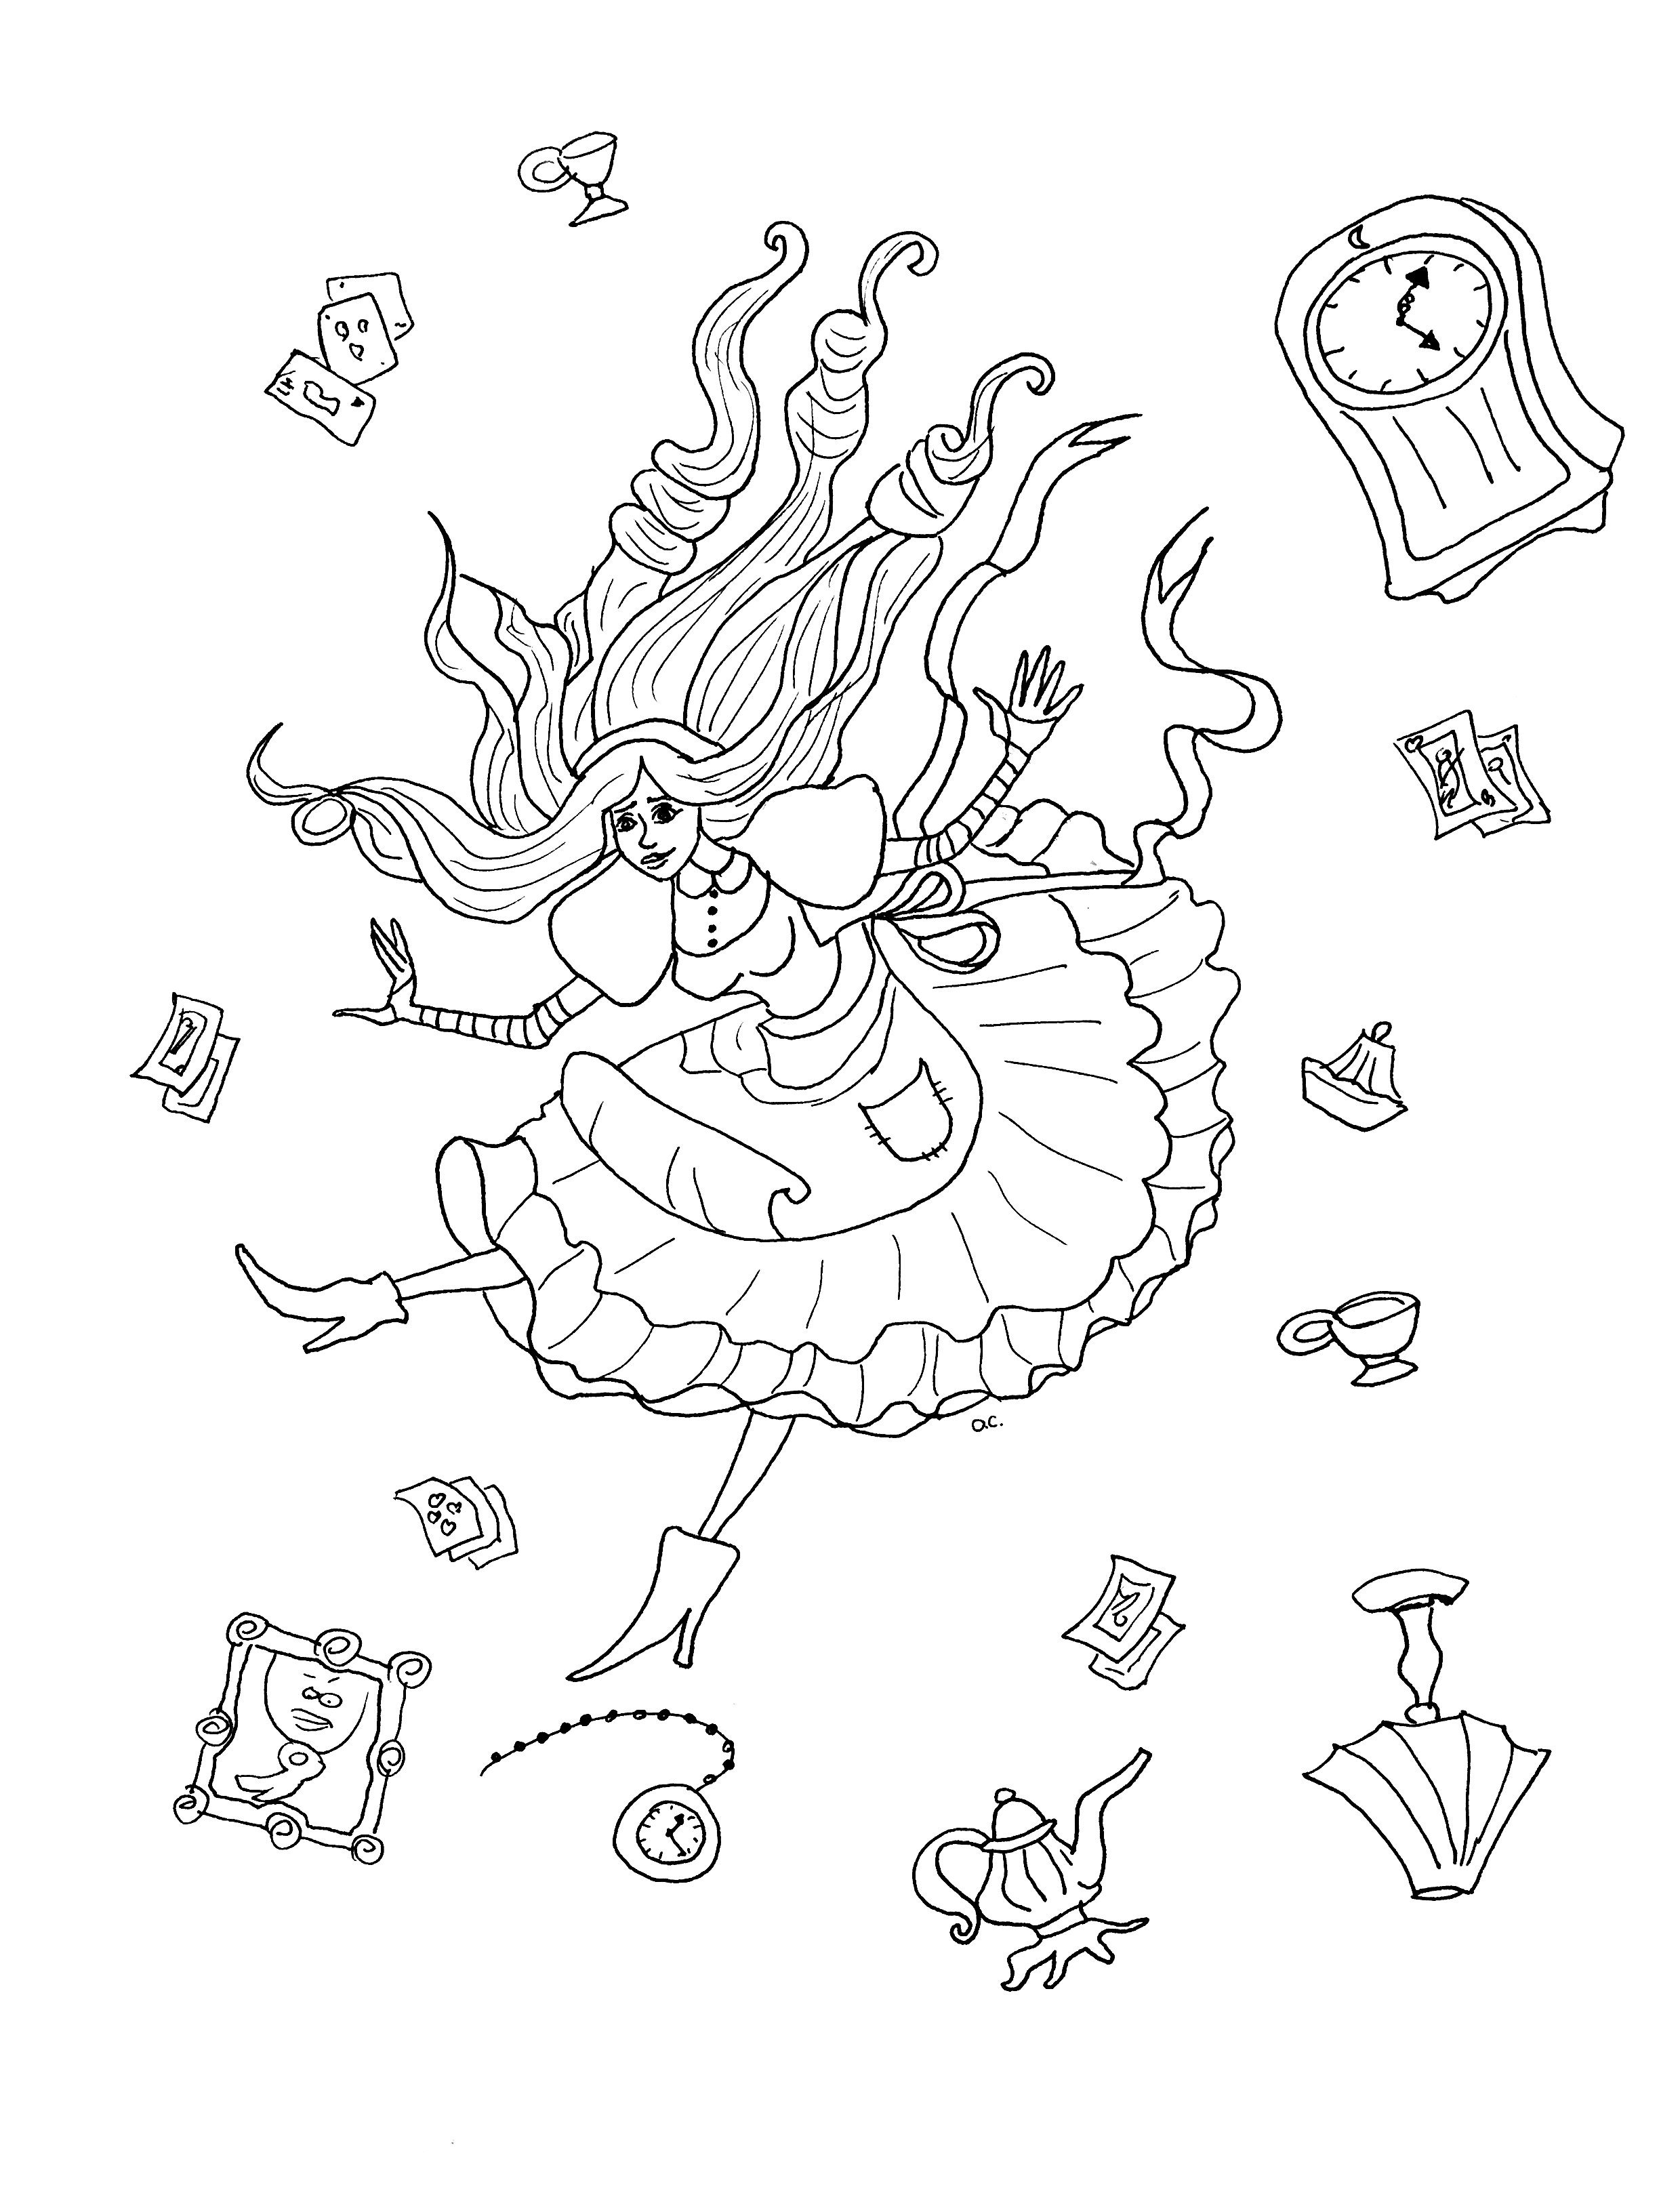 Simple Tales coloring page to download for free